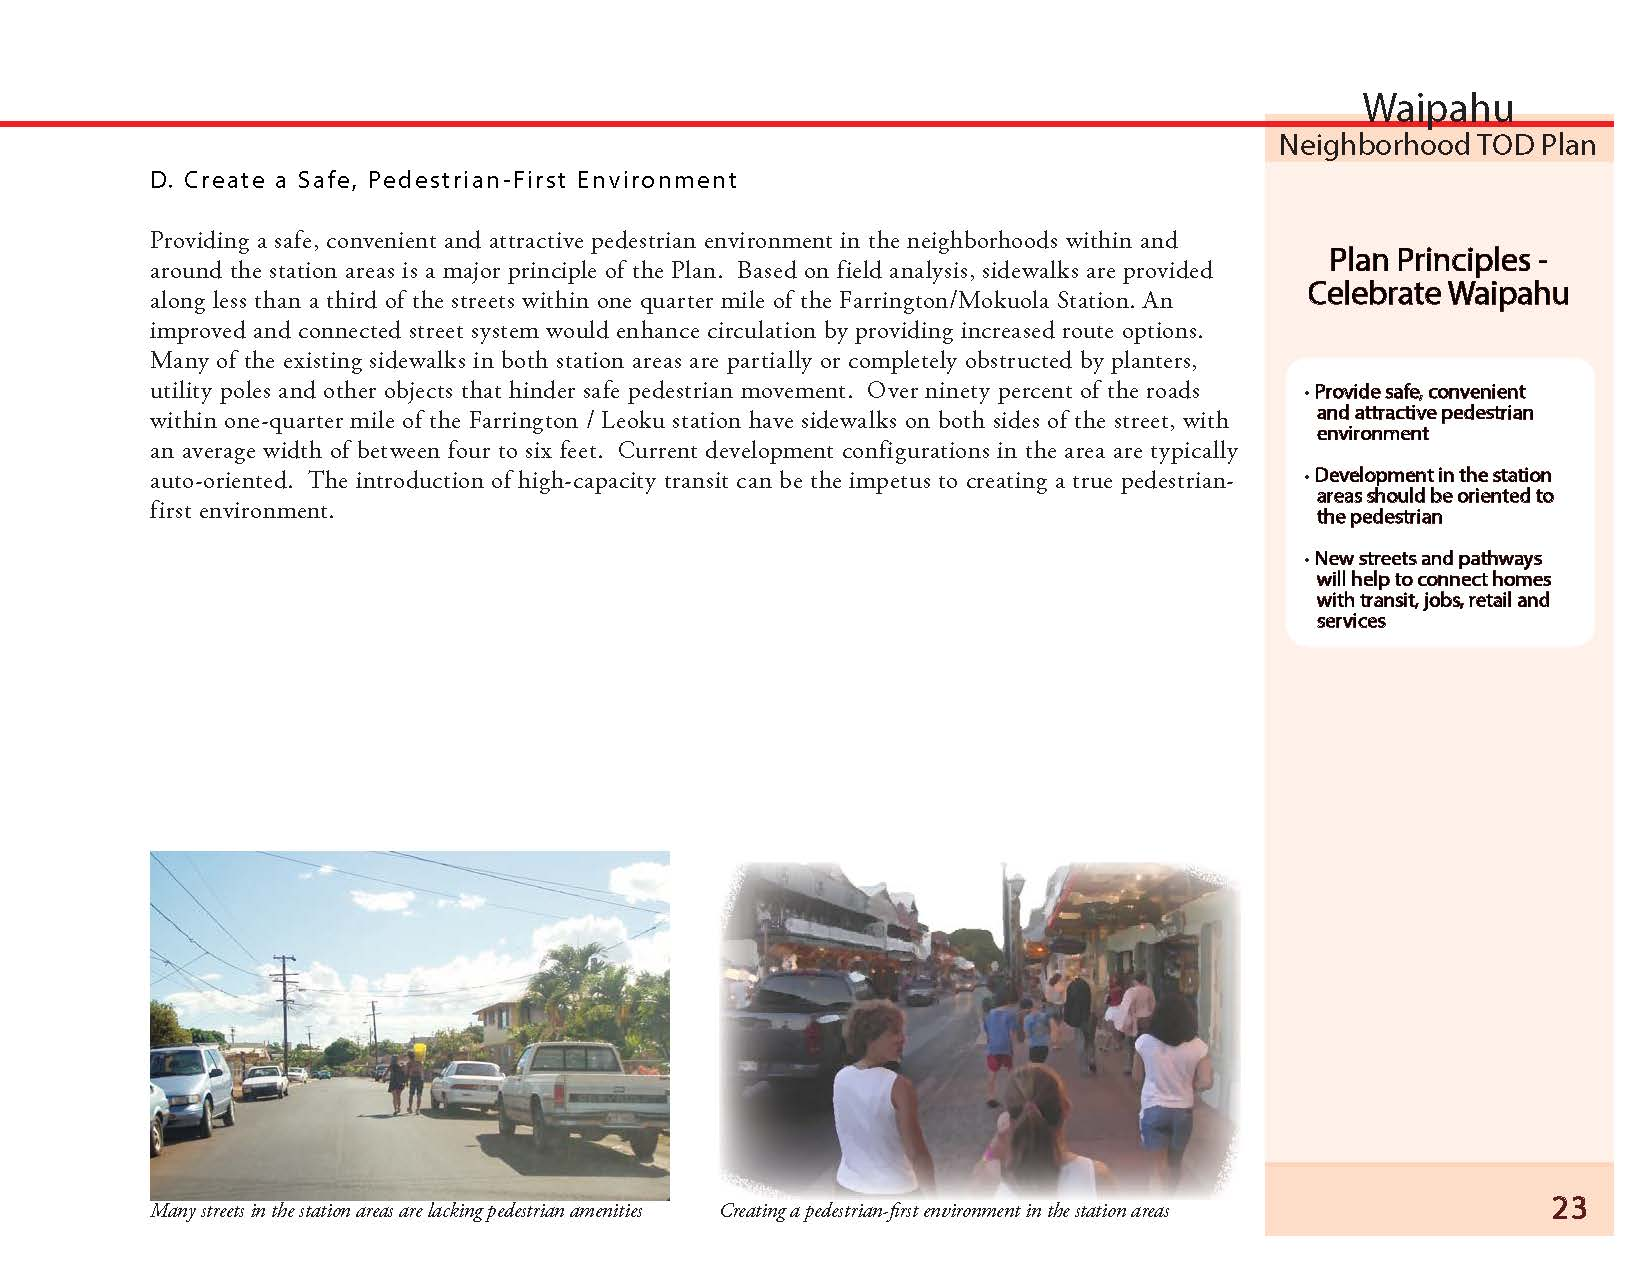 160513_Waipahu Neighborhood TOD Plan_Page_029.jpg